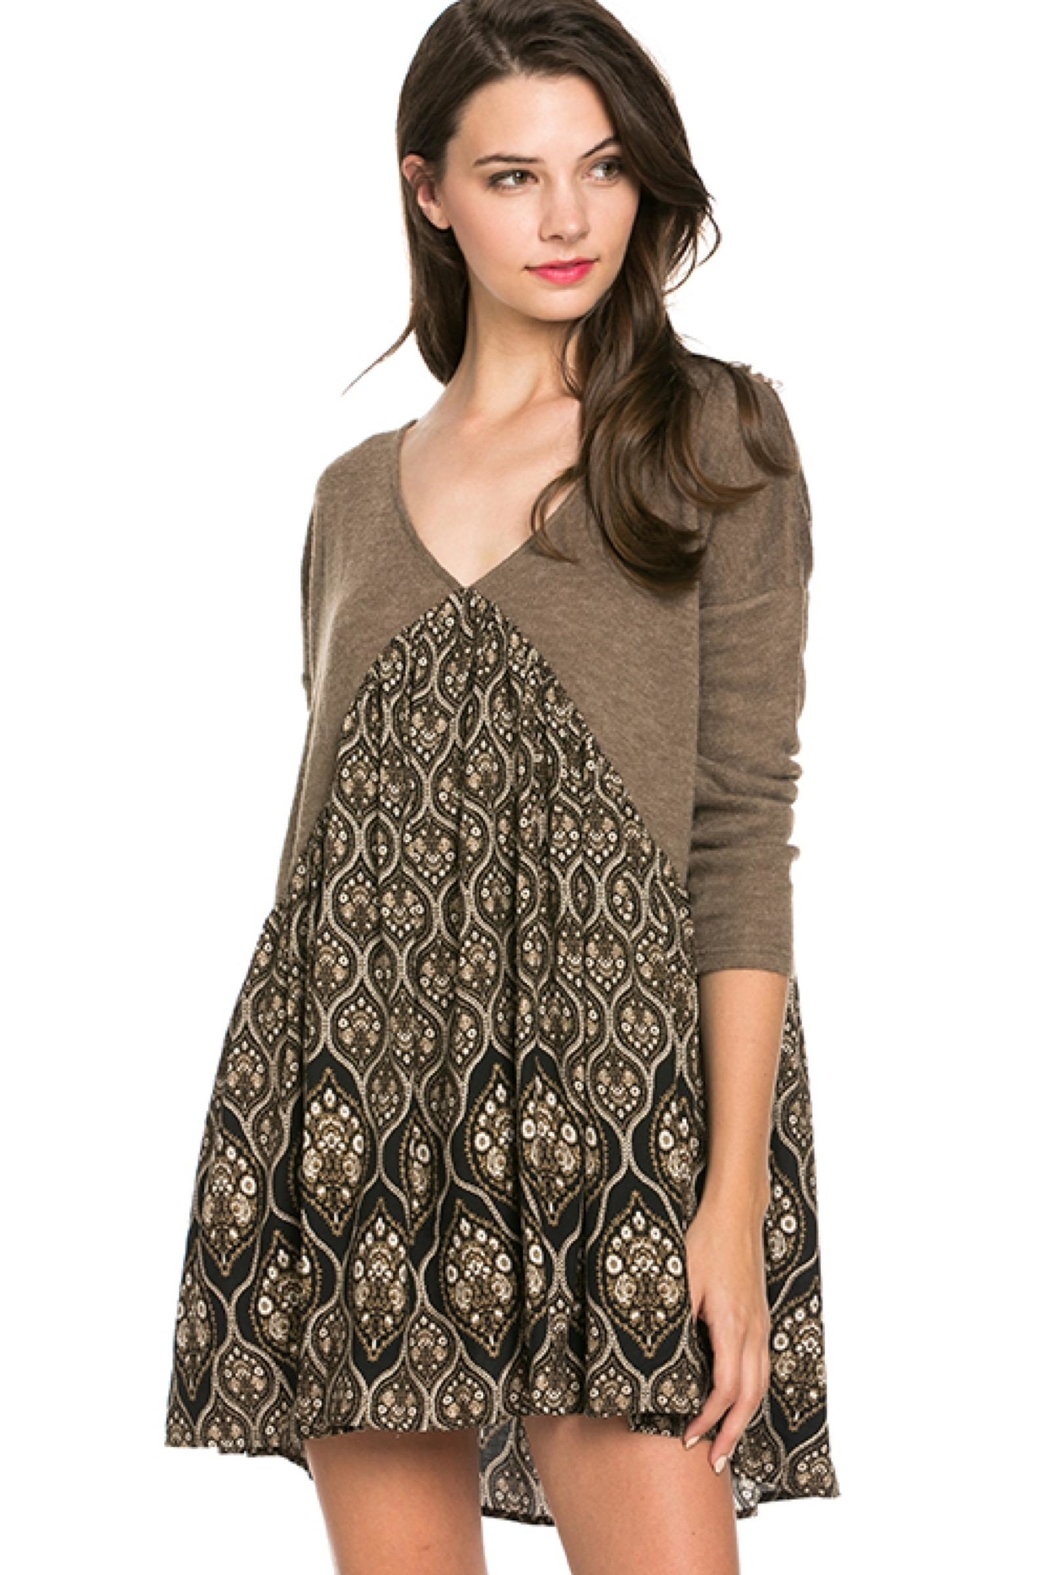 People Outfitter Taupe Tunic Dress - Main Image